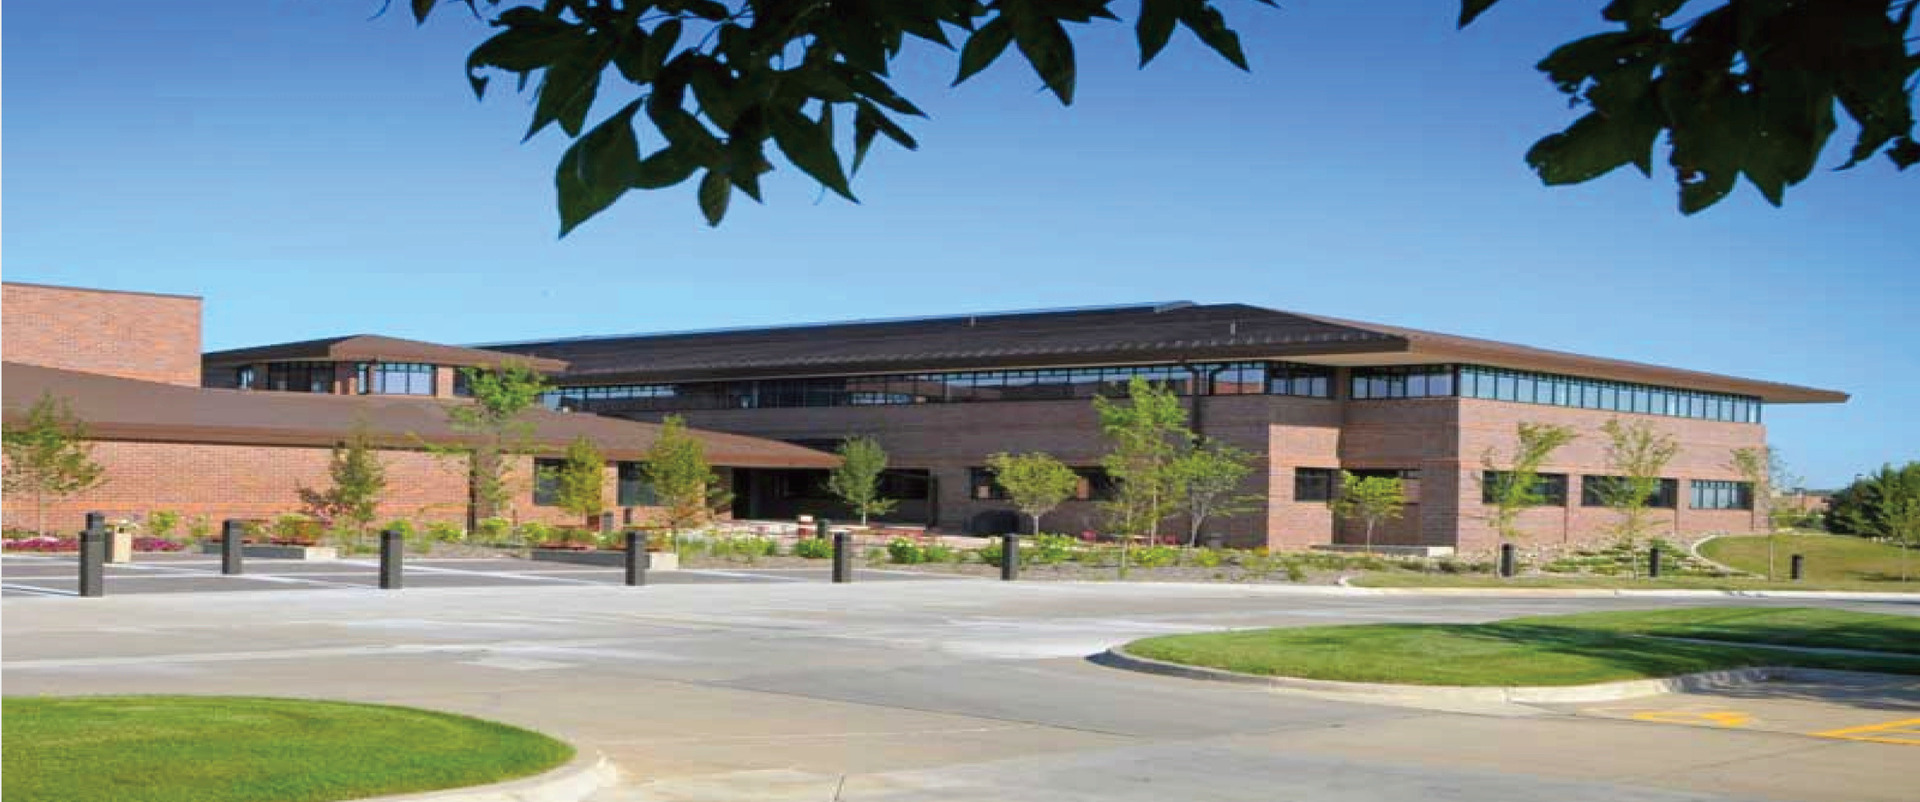 Hy-Vee Corporate Office | West Des Moines, IA